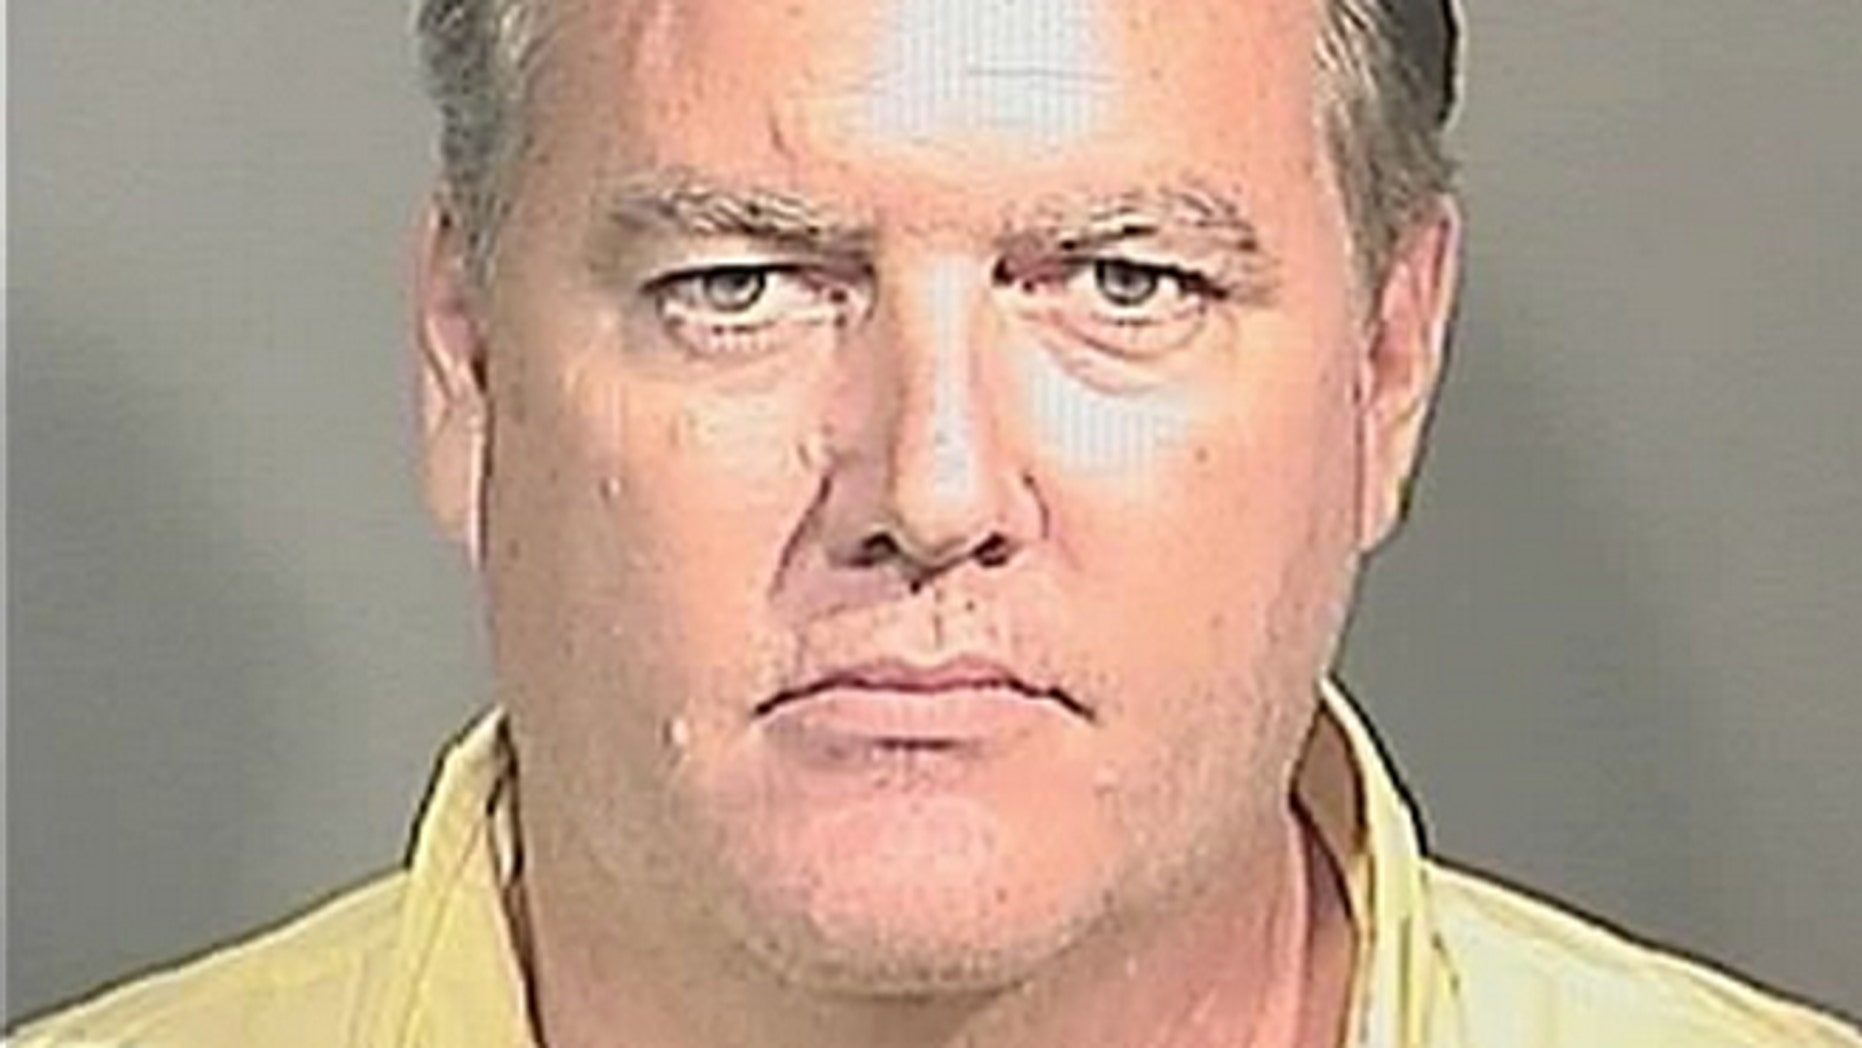 Michael Dunn, 45, is accused of murder and attempted murder in a deadly shooting at a Southside gas station.